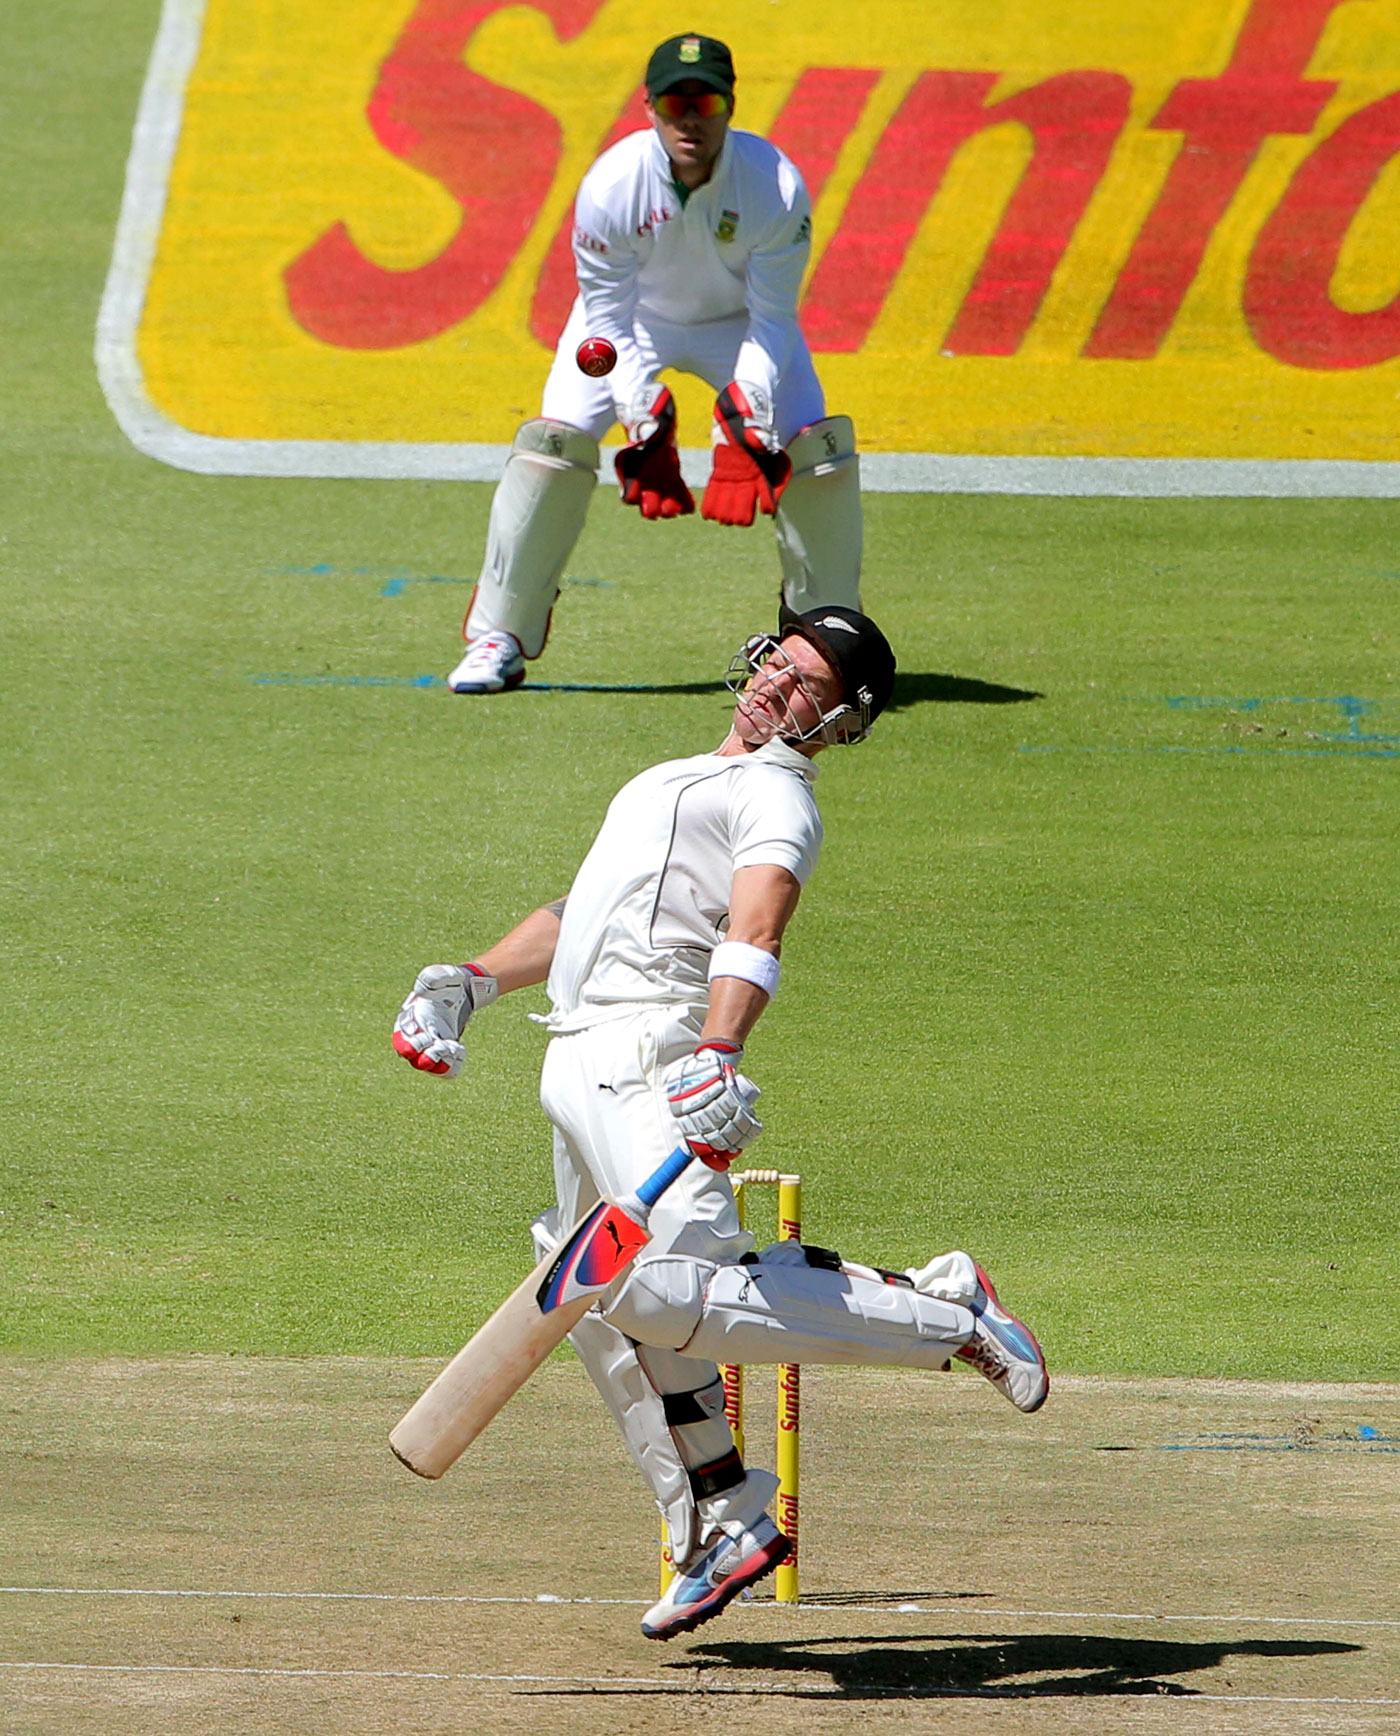 Bazinga: McCullum's first taste of Test captaincy was bitter. Widely disliked after the Ross Taylor captaincy saga, he led New Zealand to a humbling defeat in Cape Town